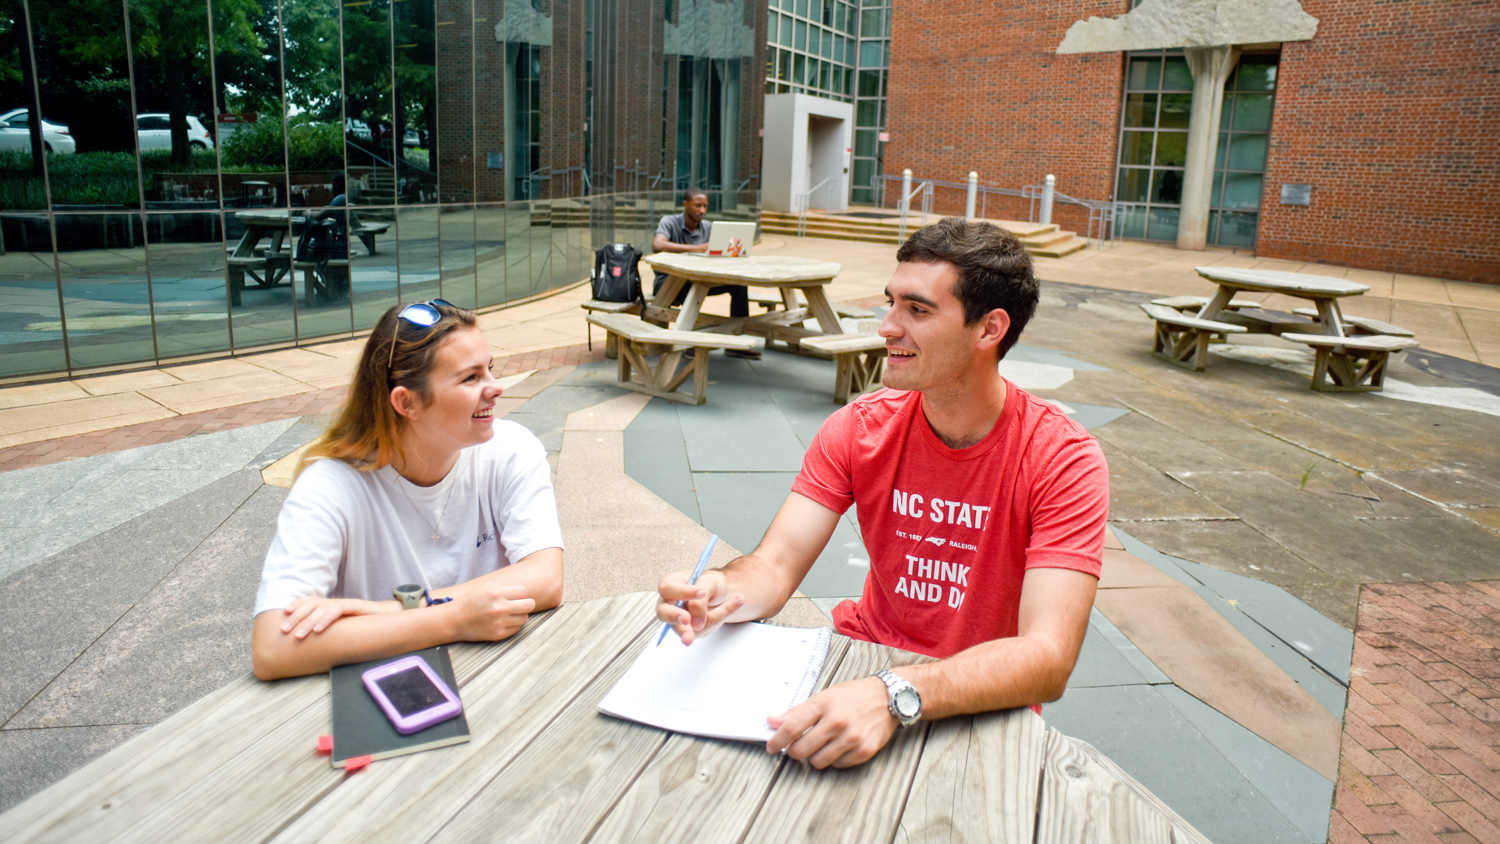 cnr students - Academics - College of Natural Resources at NCState University